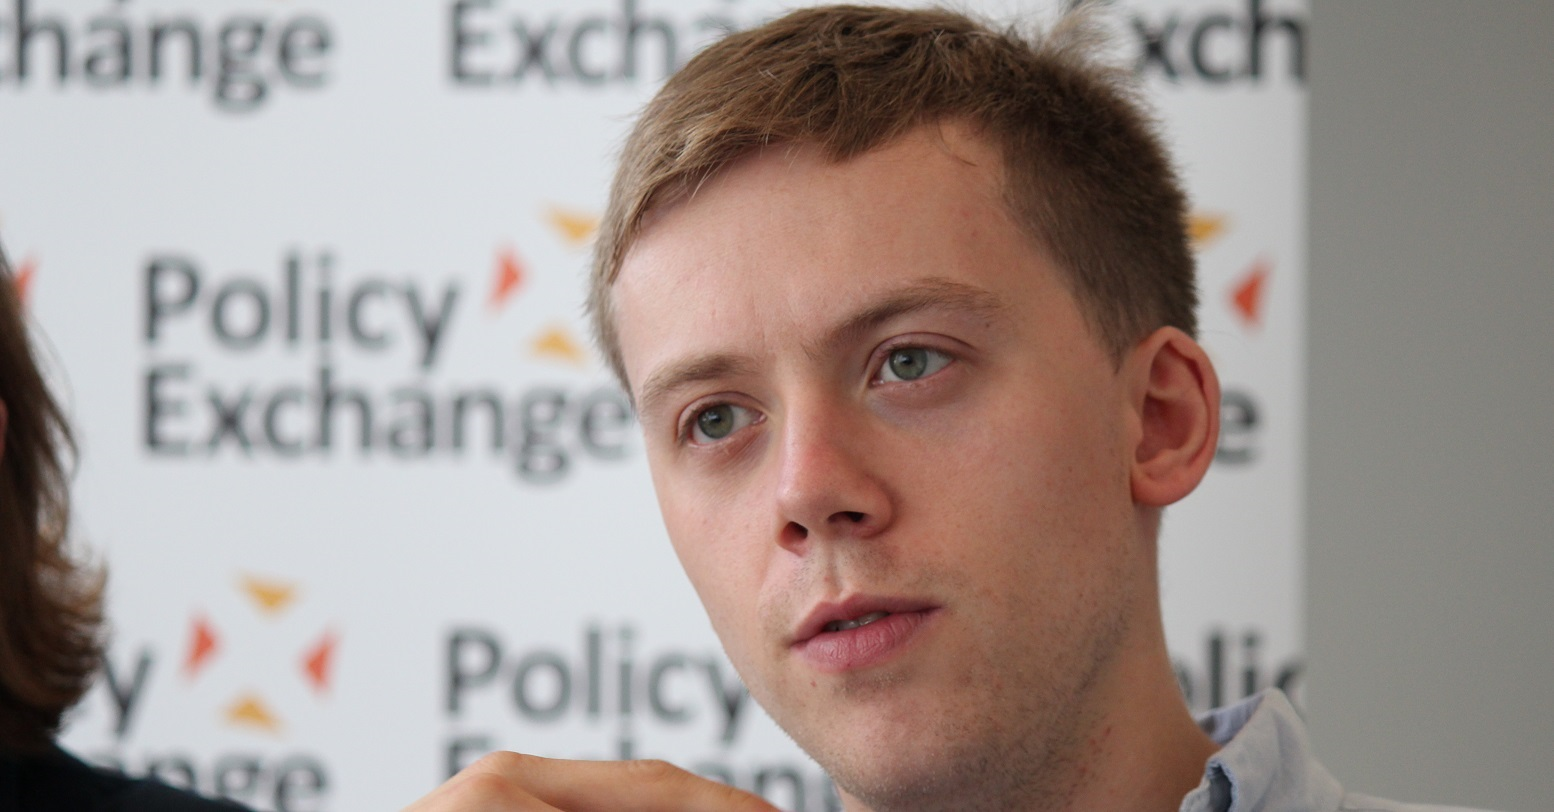 Owen Jones crop